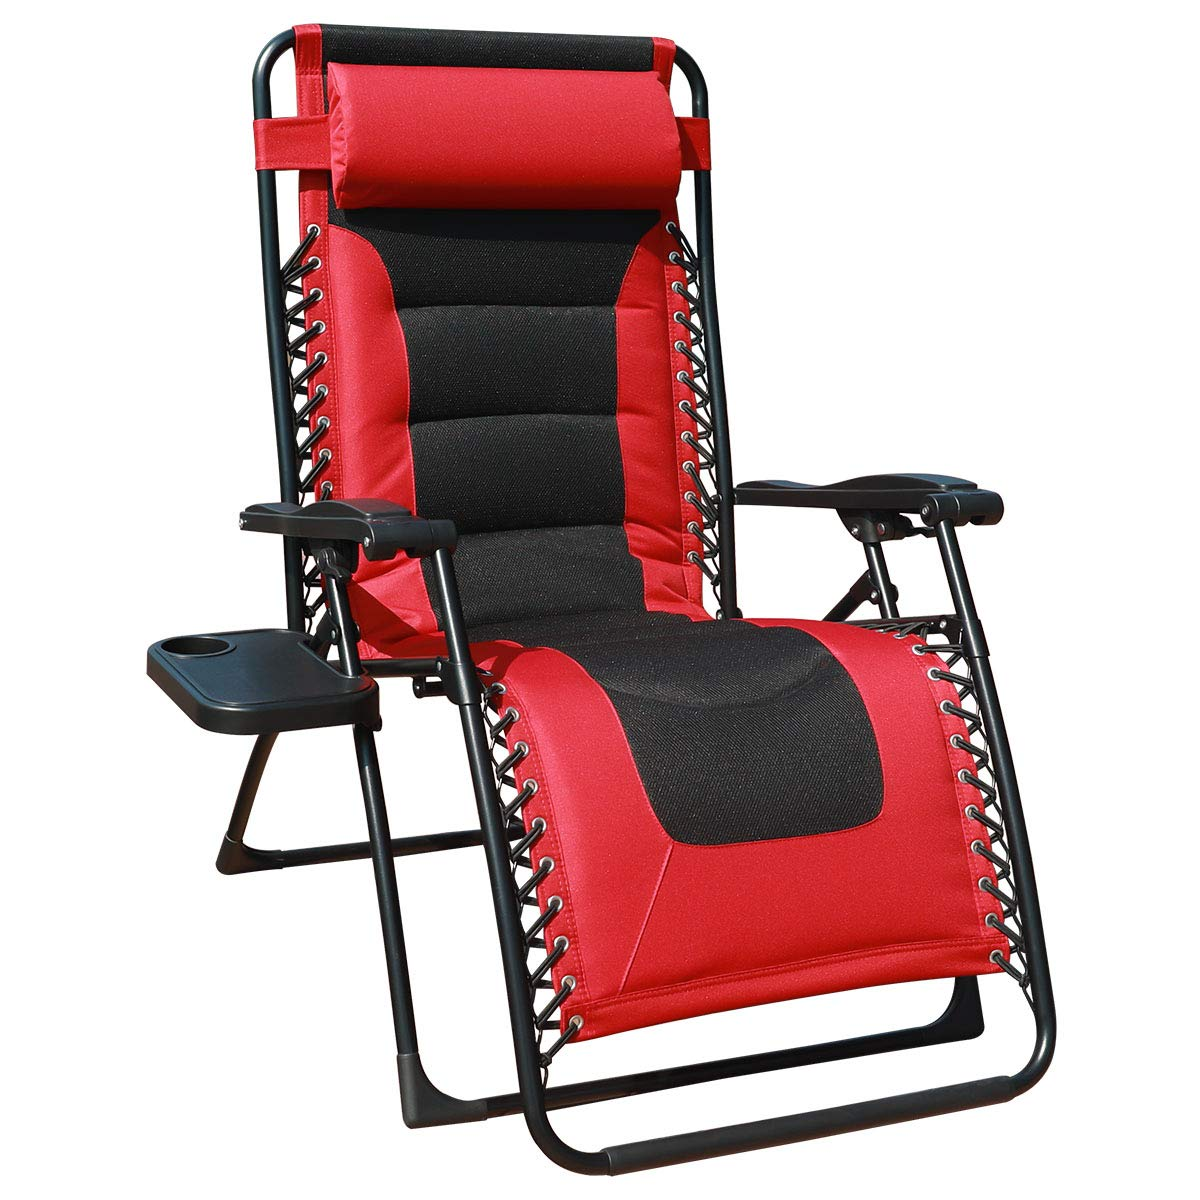 GOLDSUN Oversized Padded Zero Gravity Reclining Chair Adjustable Patio Lounge Chair with Cup Holder for Outdoor Beach Porch,Swimming Pool (Red) by GOLDSUN